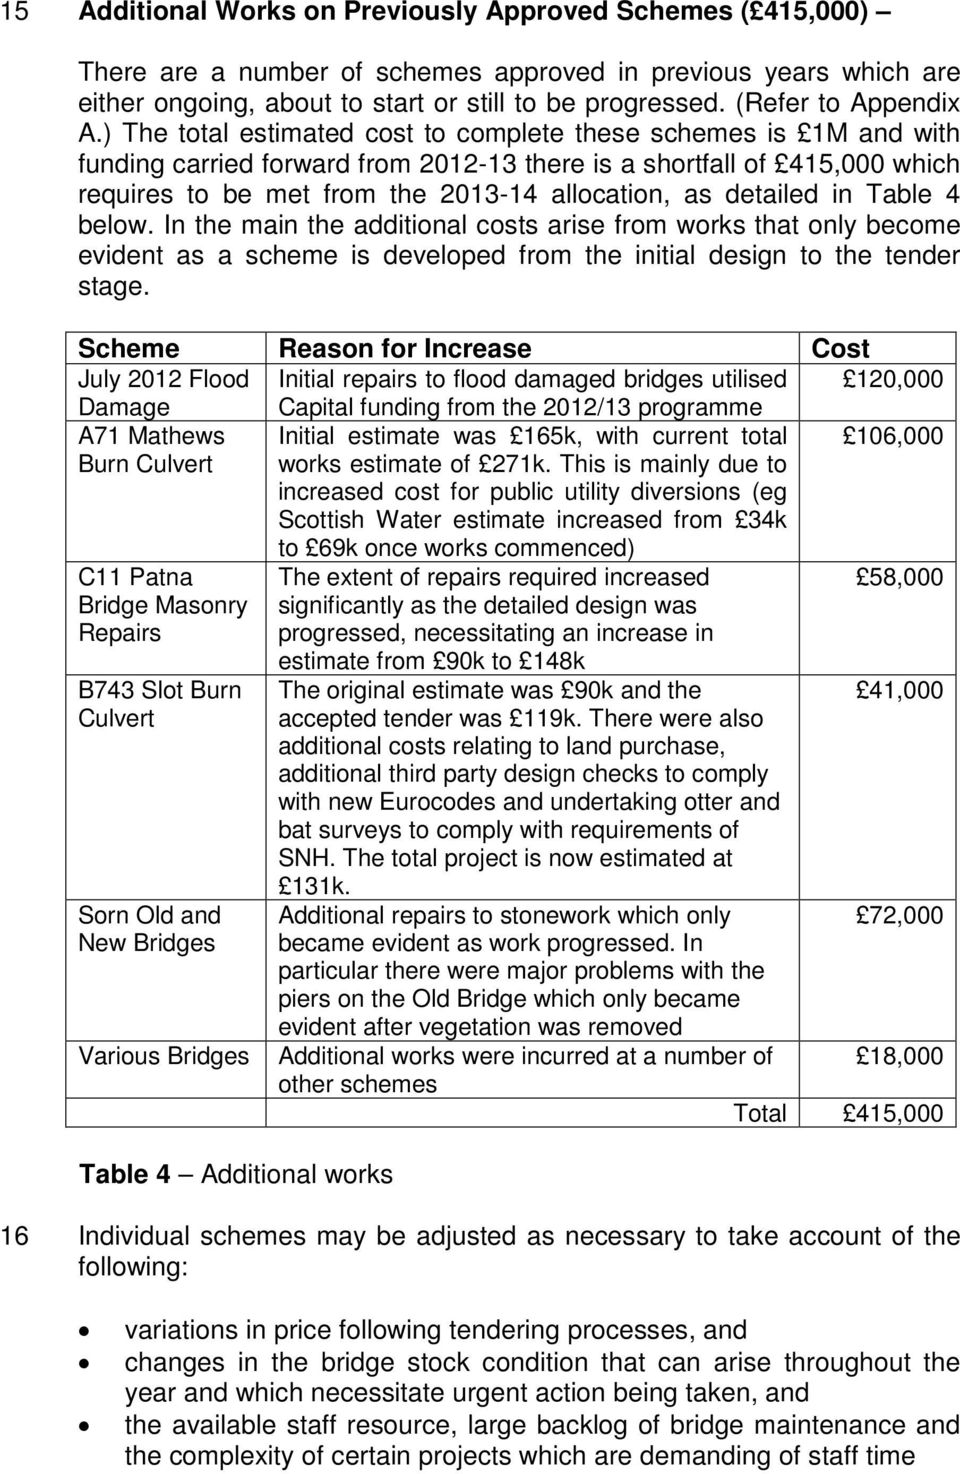 ) The total estimated cost to complete these schemes is 1M and with funding carried forward from 2012-13 there is a shortfall of 415,000 which requires to be met from the 2013-14 allocation, as